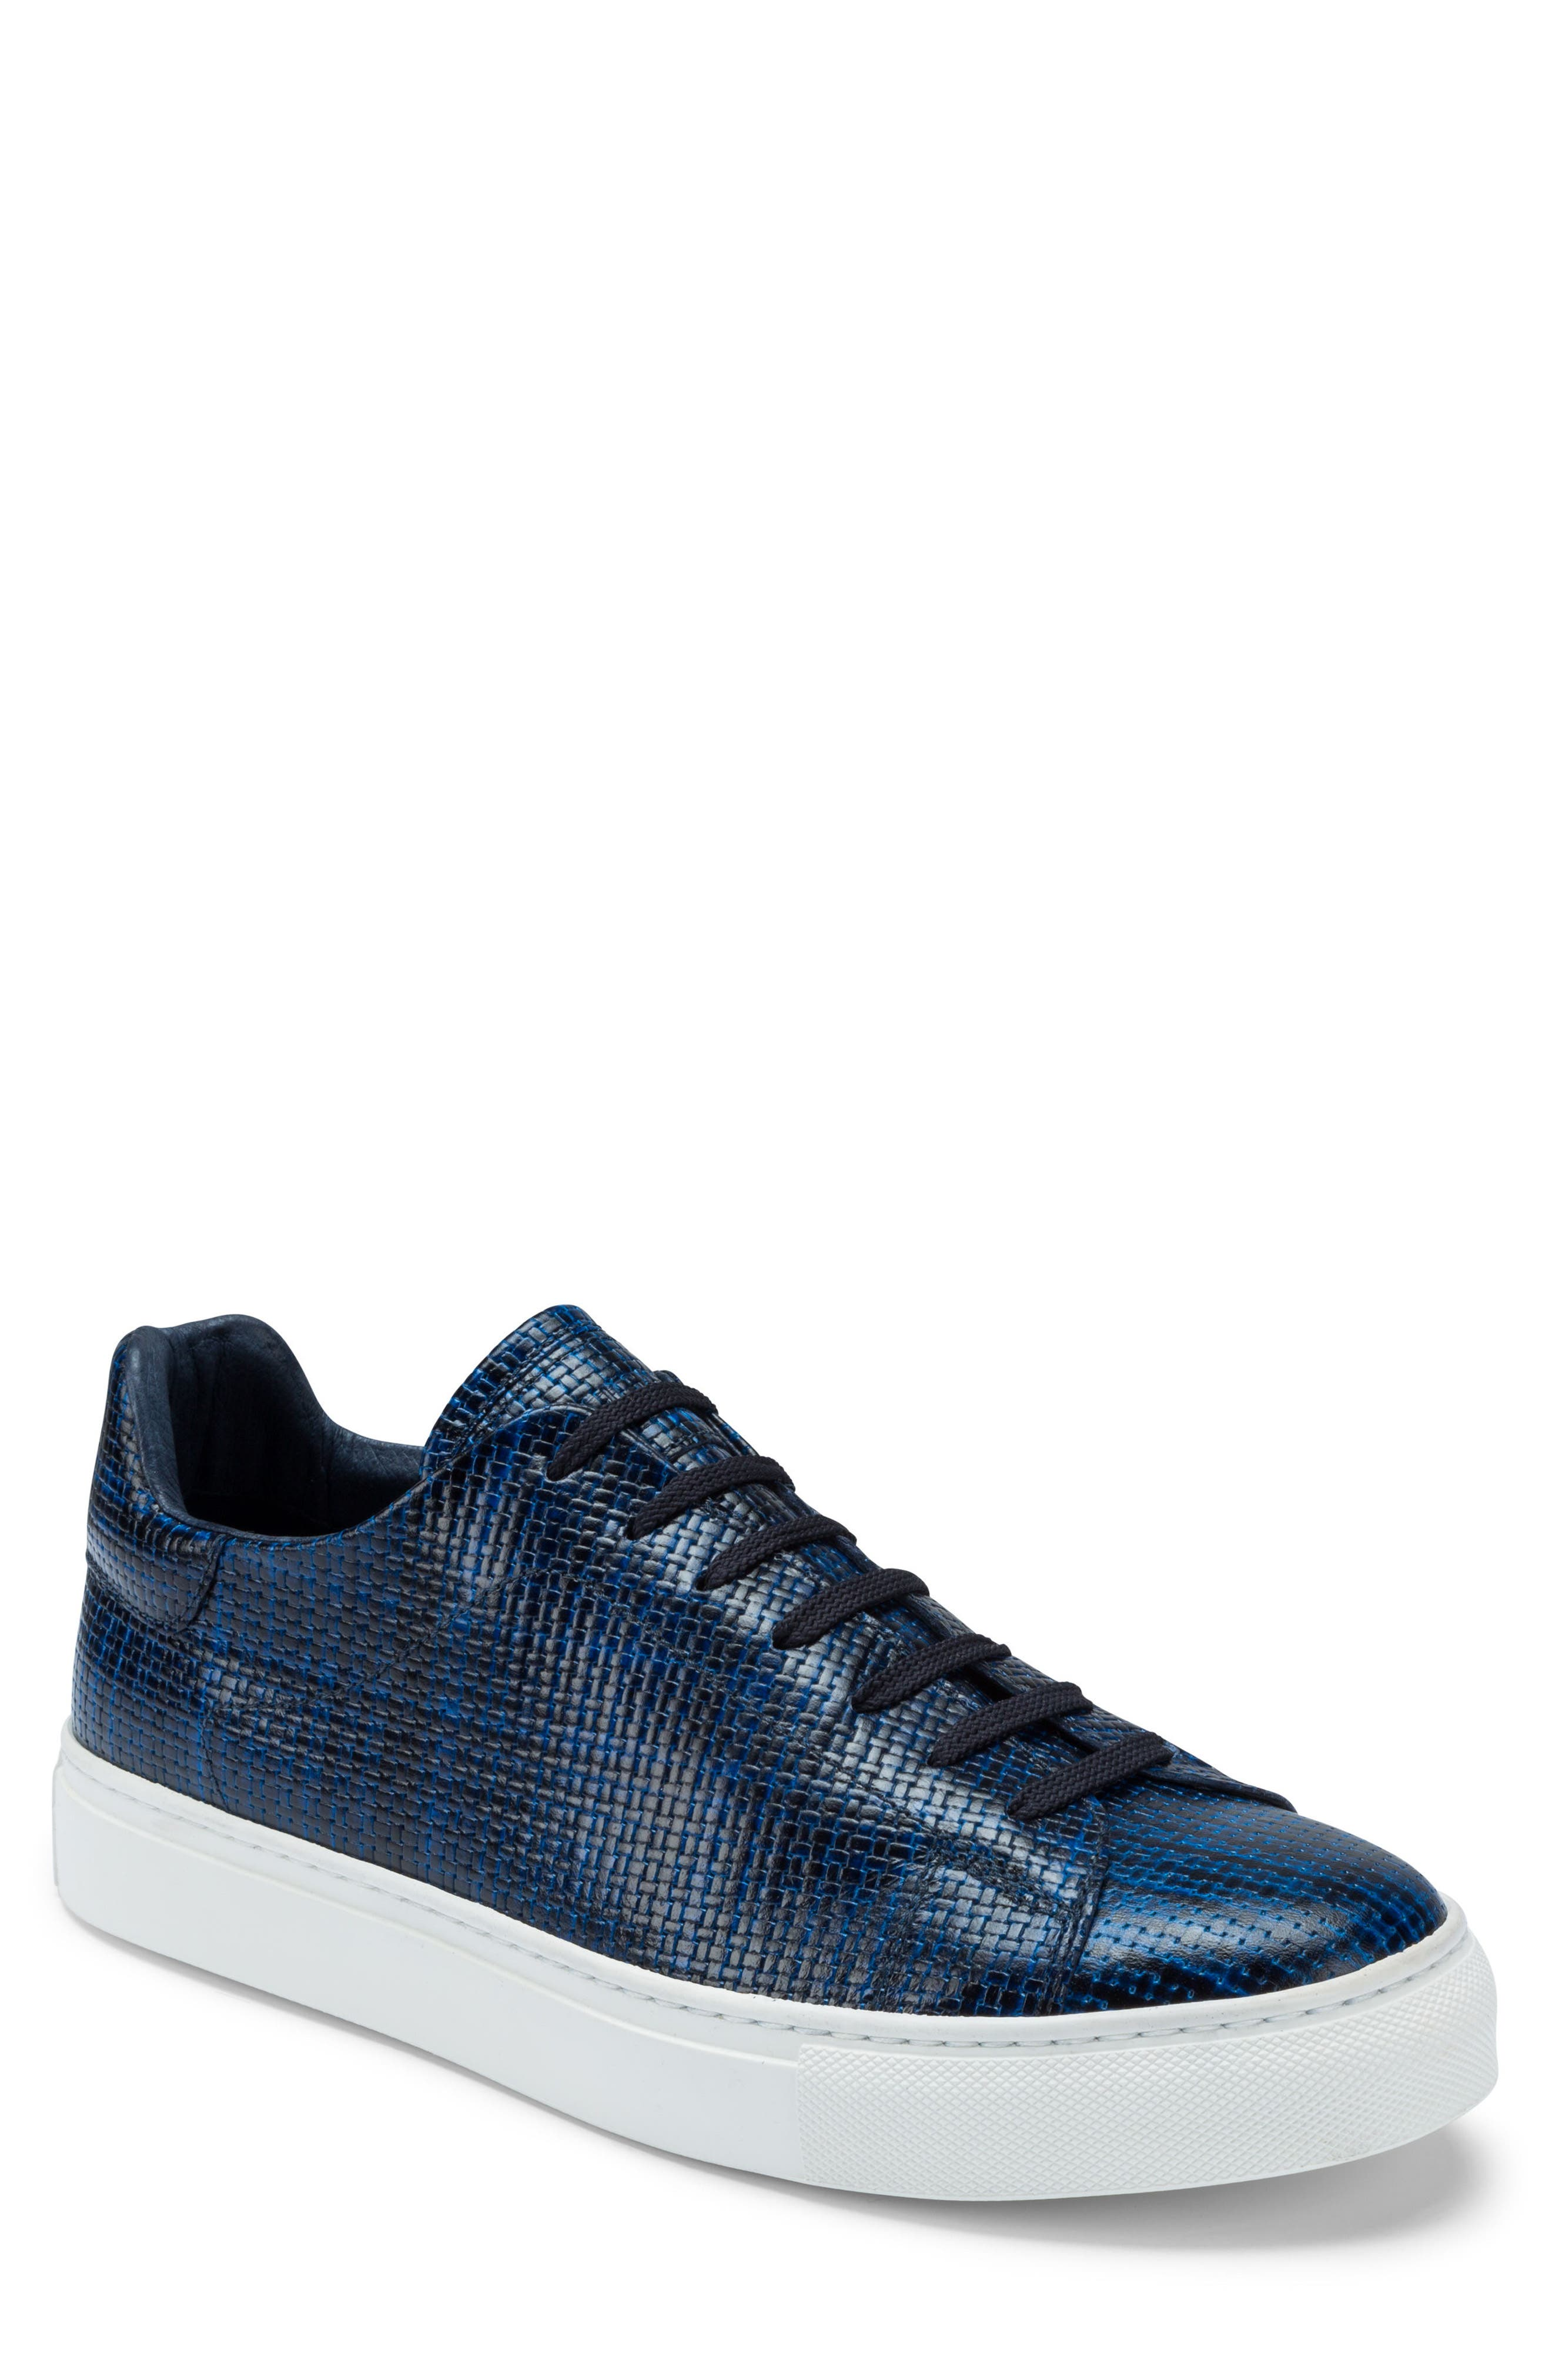 Wimbledon Sneaker,                         Main,                         color, Navy Leather